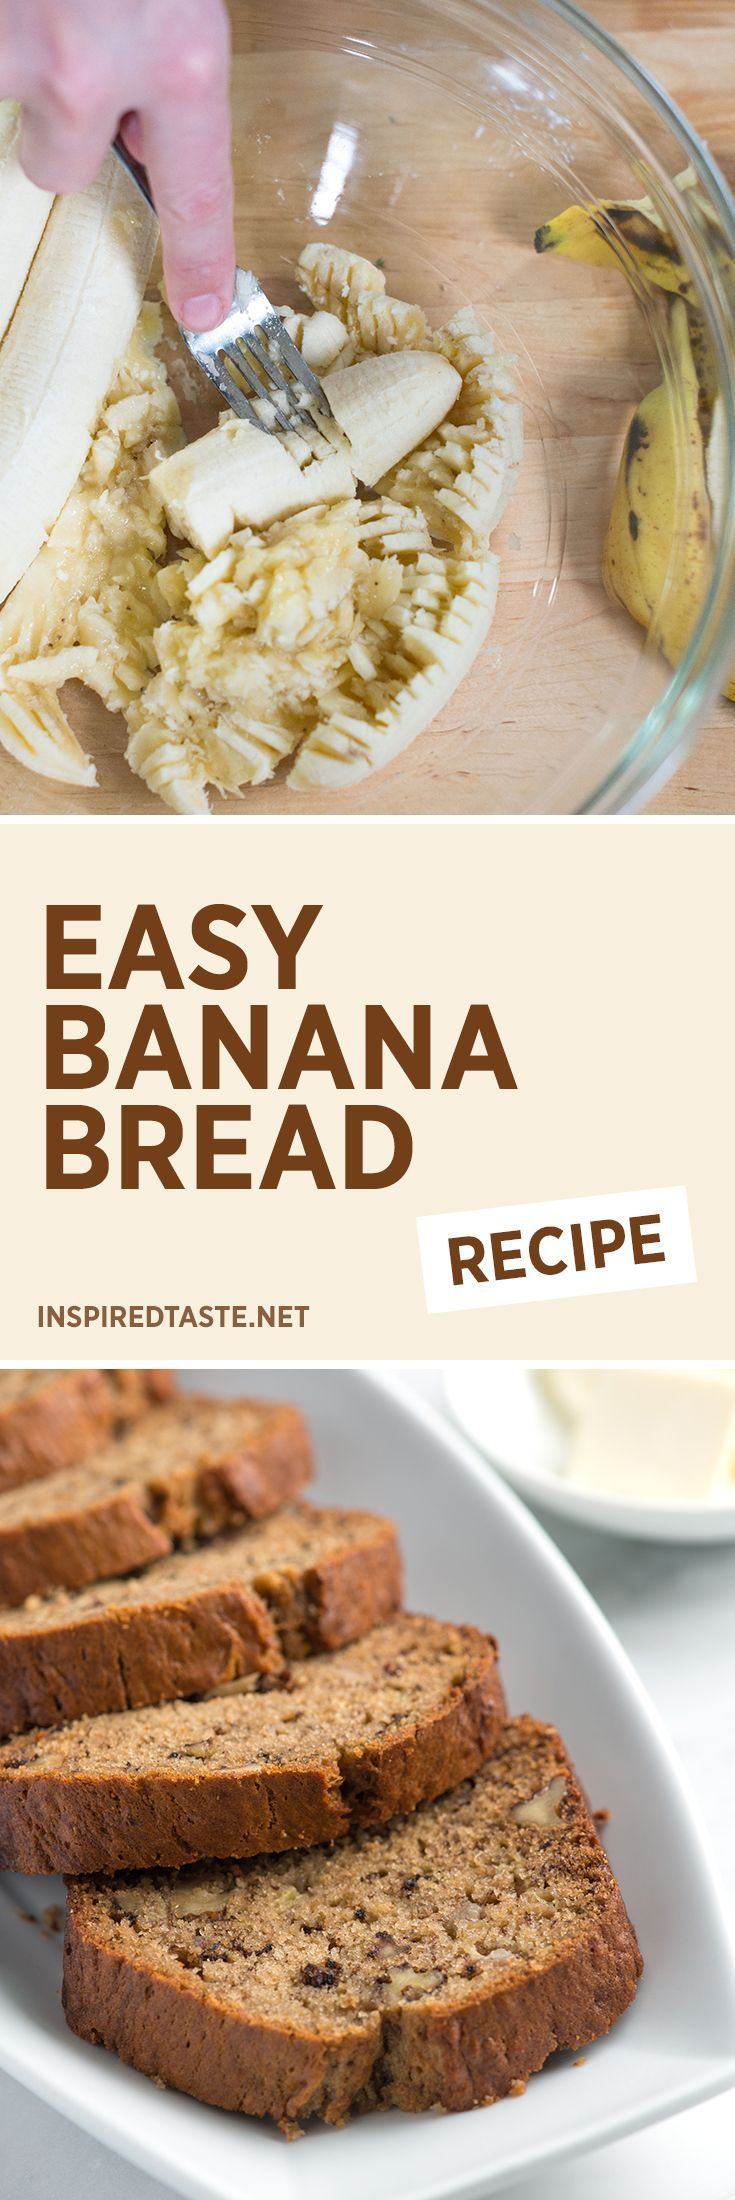 Easy Banana Bread recipe - This is so good, you'll want to make 2 loaves!